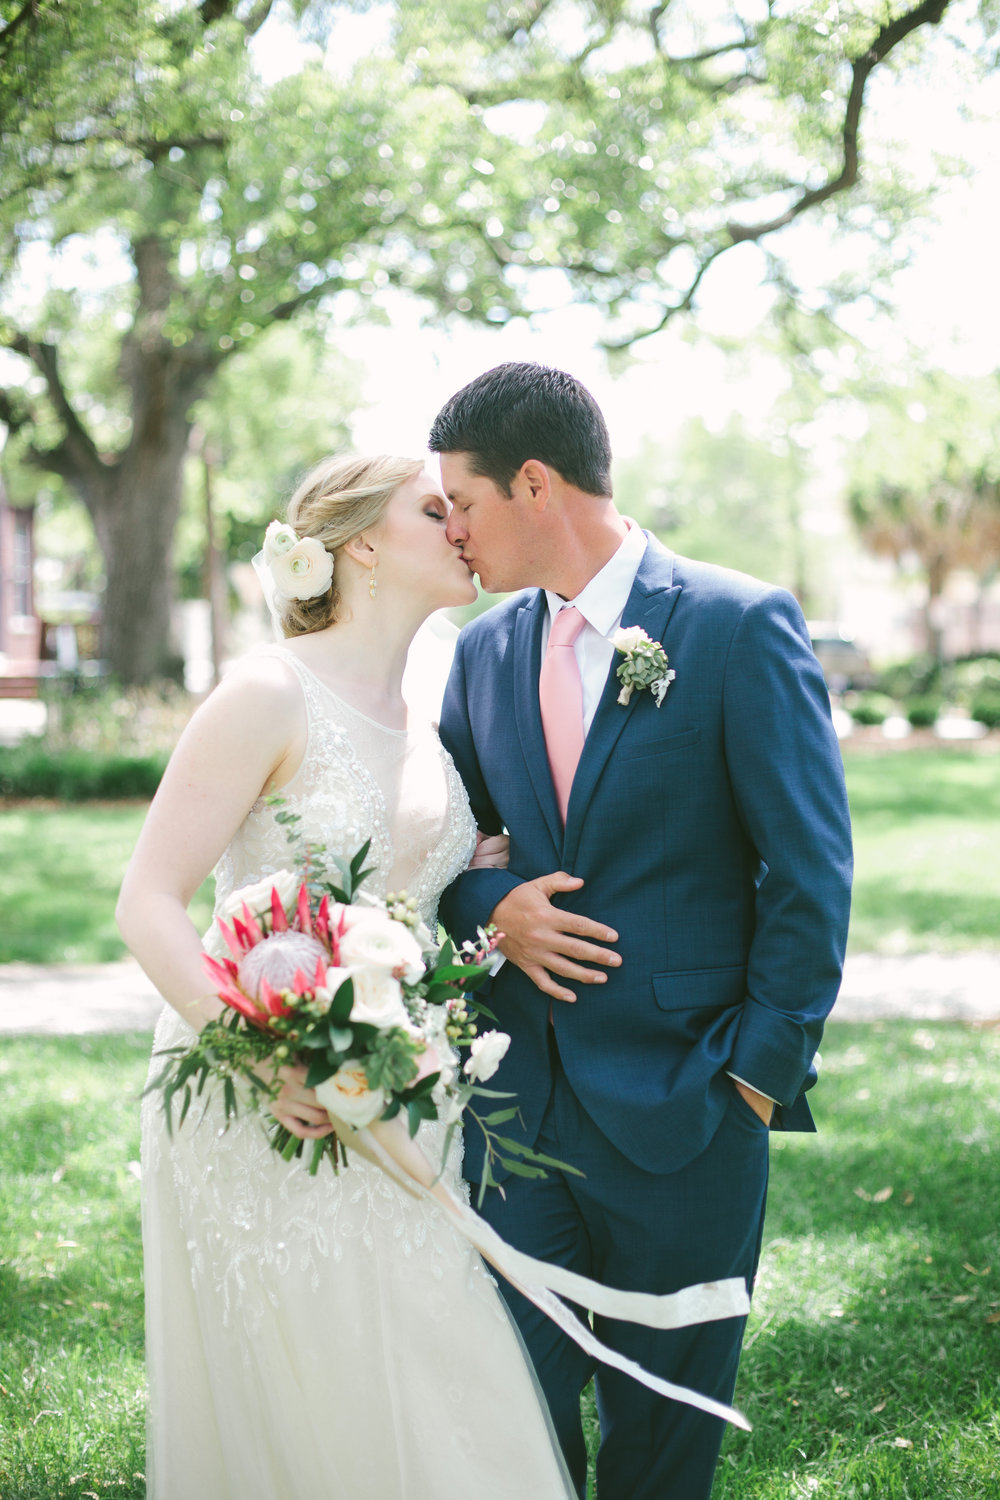 allison-blake-ivory-and-beau-bridal-boutique-savannah-wedding-planner-savannah-florist-jenna-davis-photography-cha-bella-wedding-warren-square-wedding-savannah-square-wedding-savannah-bridal-savannah-weddings-gettin-ready-20.jpg